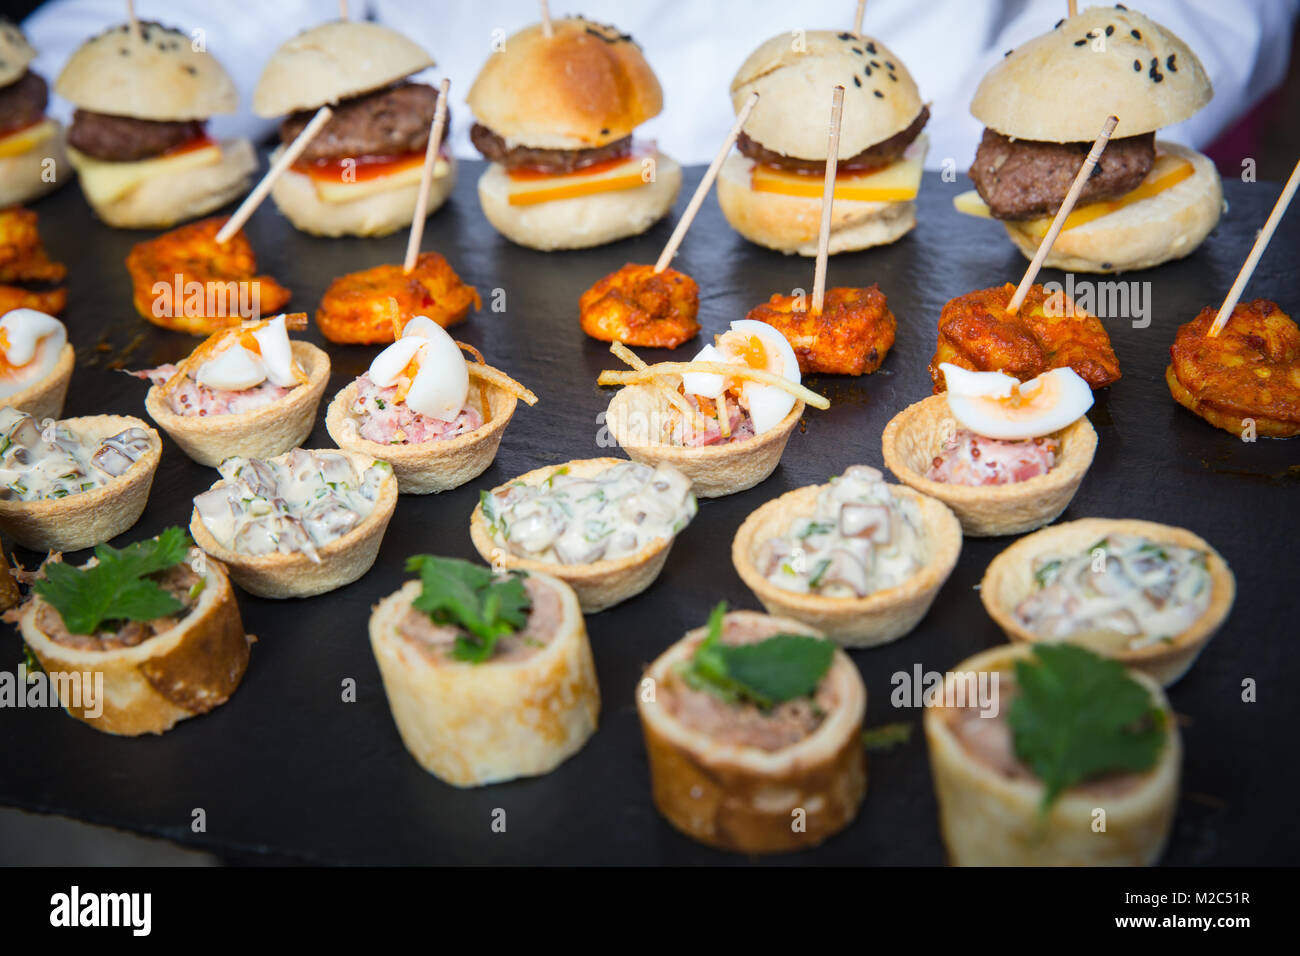 Selection of canapes, close-up - Stock Image